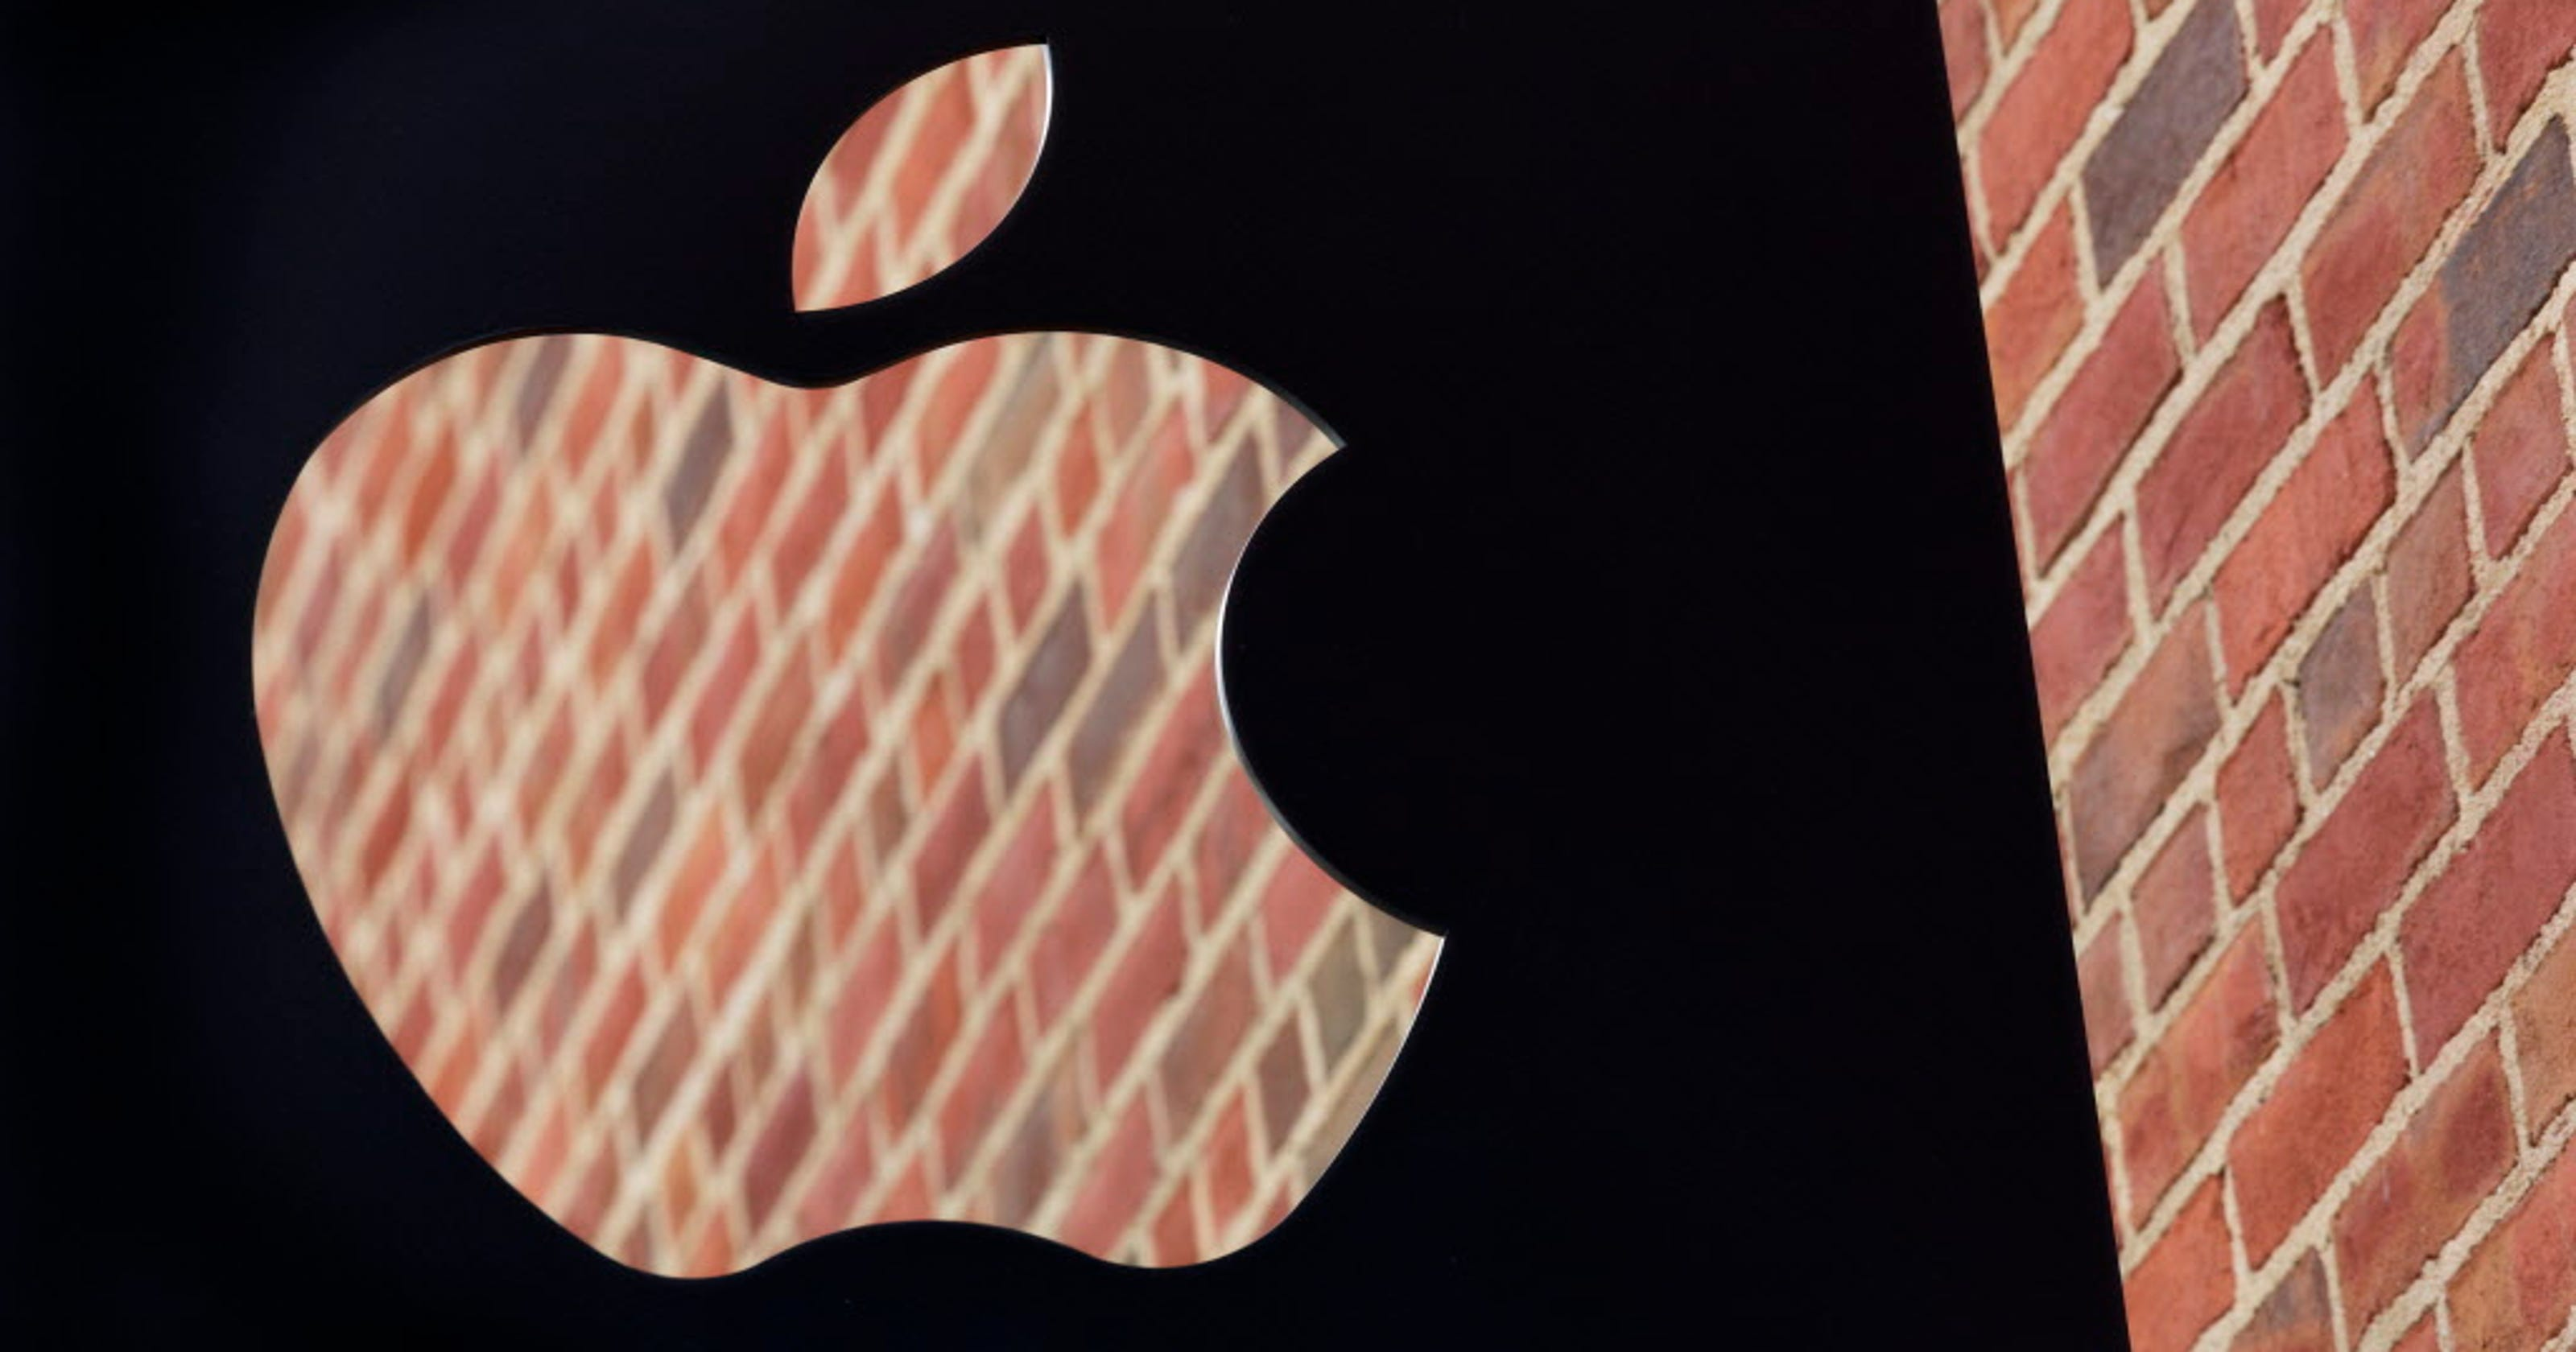 Apple Stock On Fire From Samsungs Flames